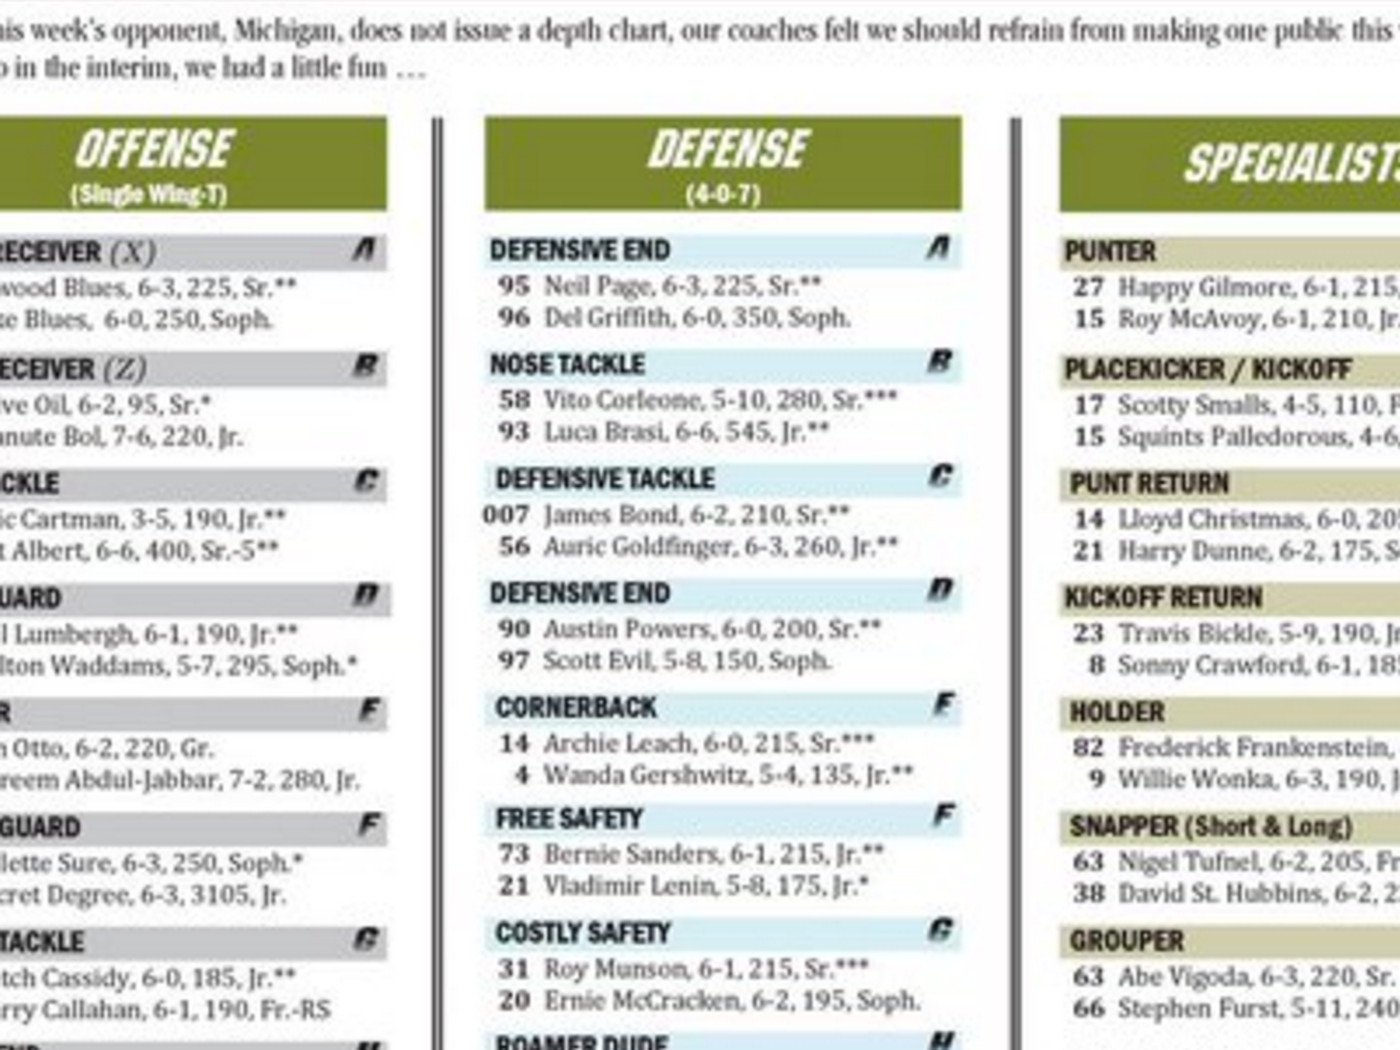 Why Colorado Sed Michigan S Depth Chart Secrecy You Ve Just Gotta Have Fun Sbnation